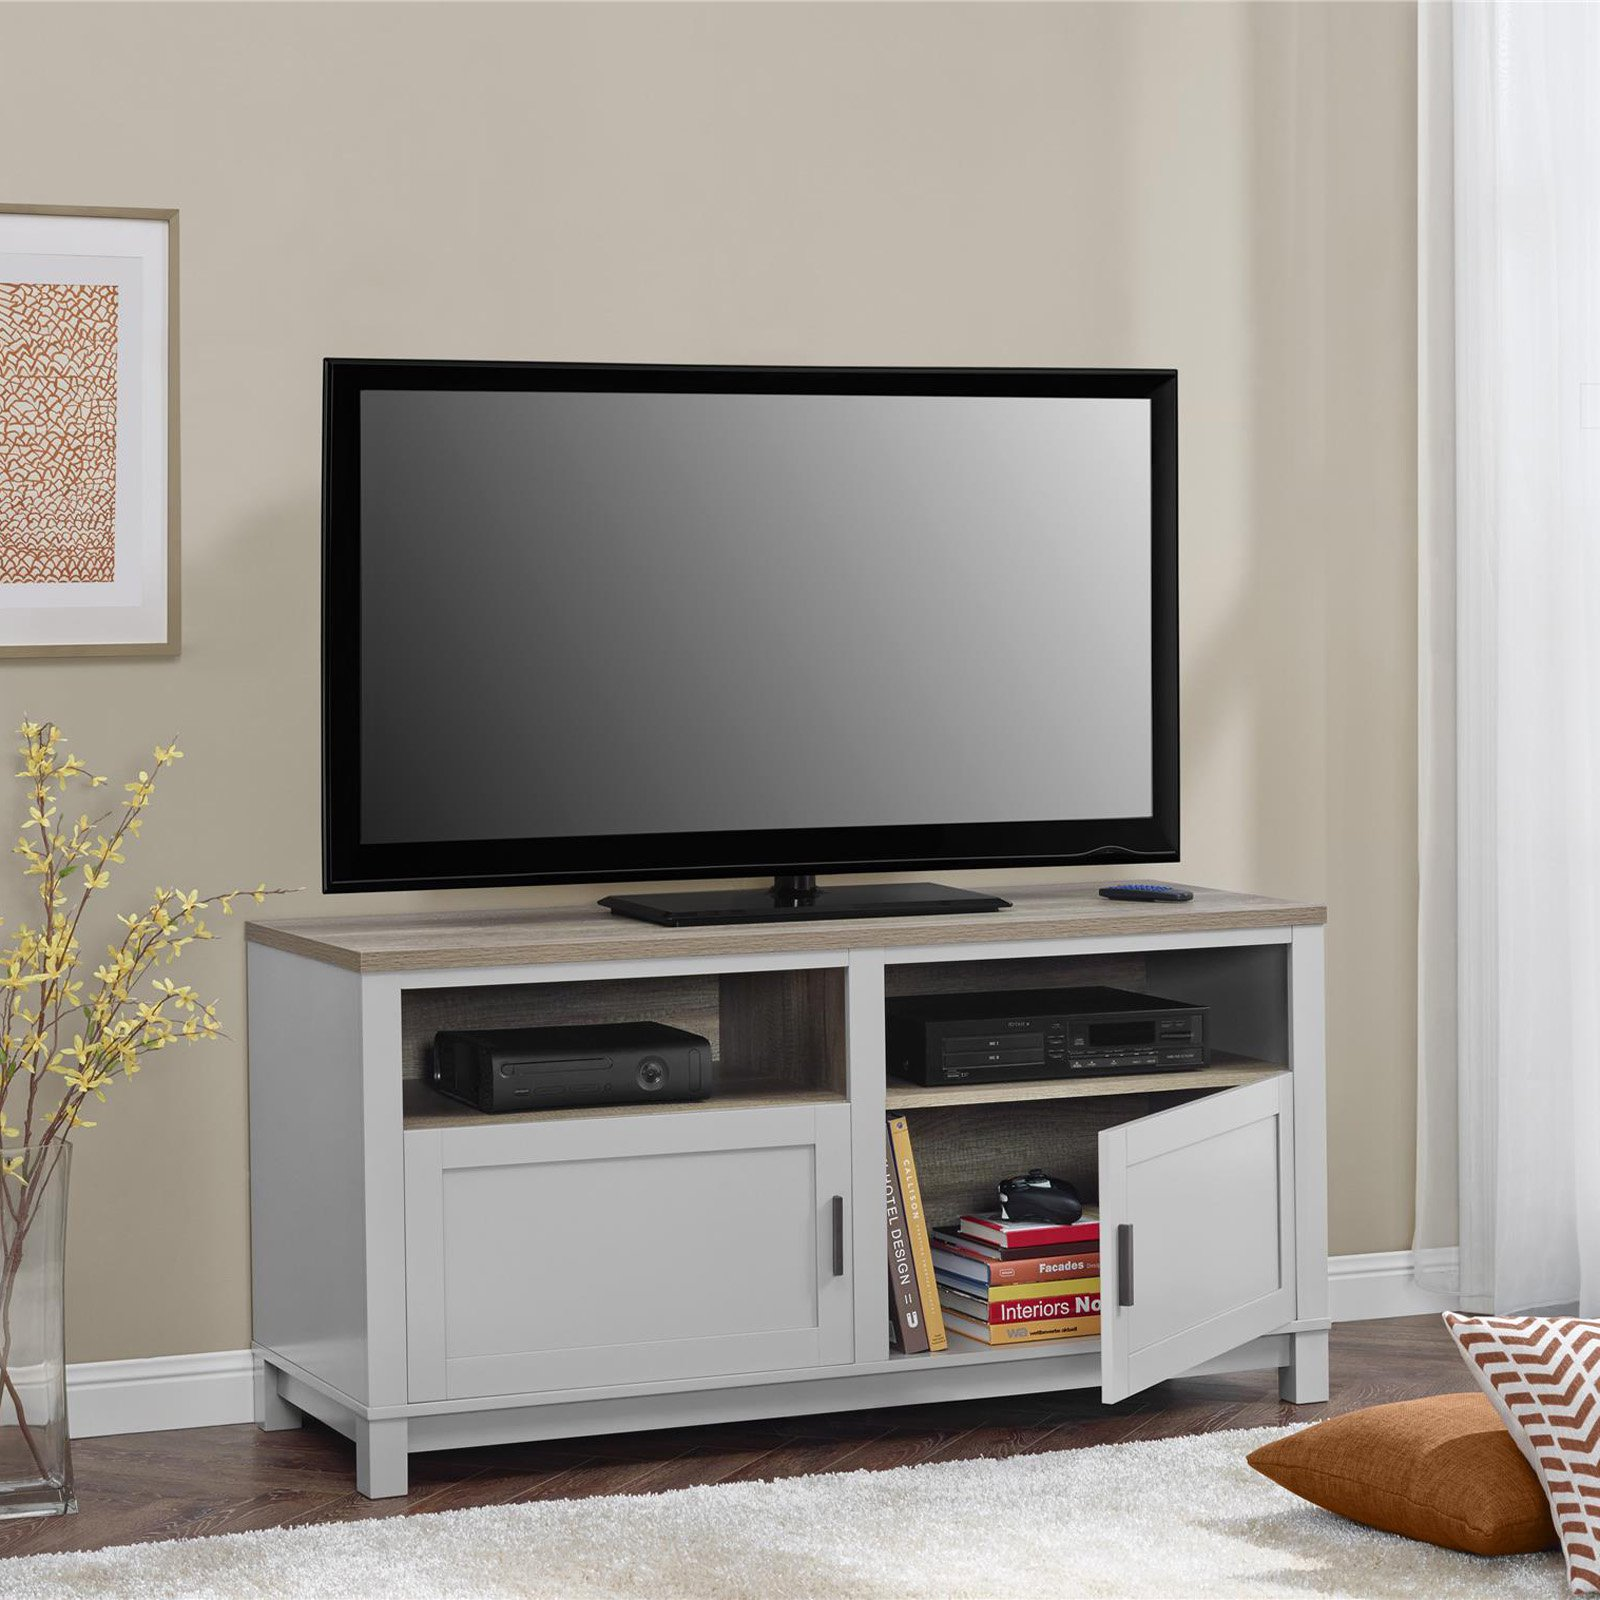 "Ameriwood Home Carver TV Stand for TVs up to 60"" Wide, Gray"